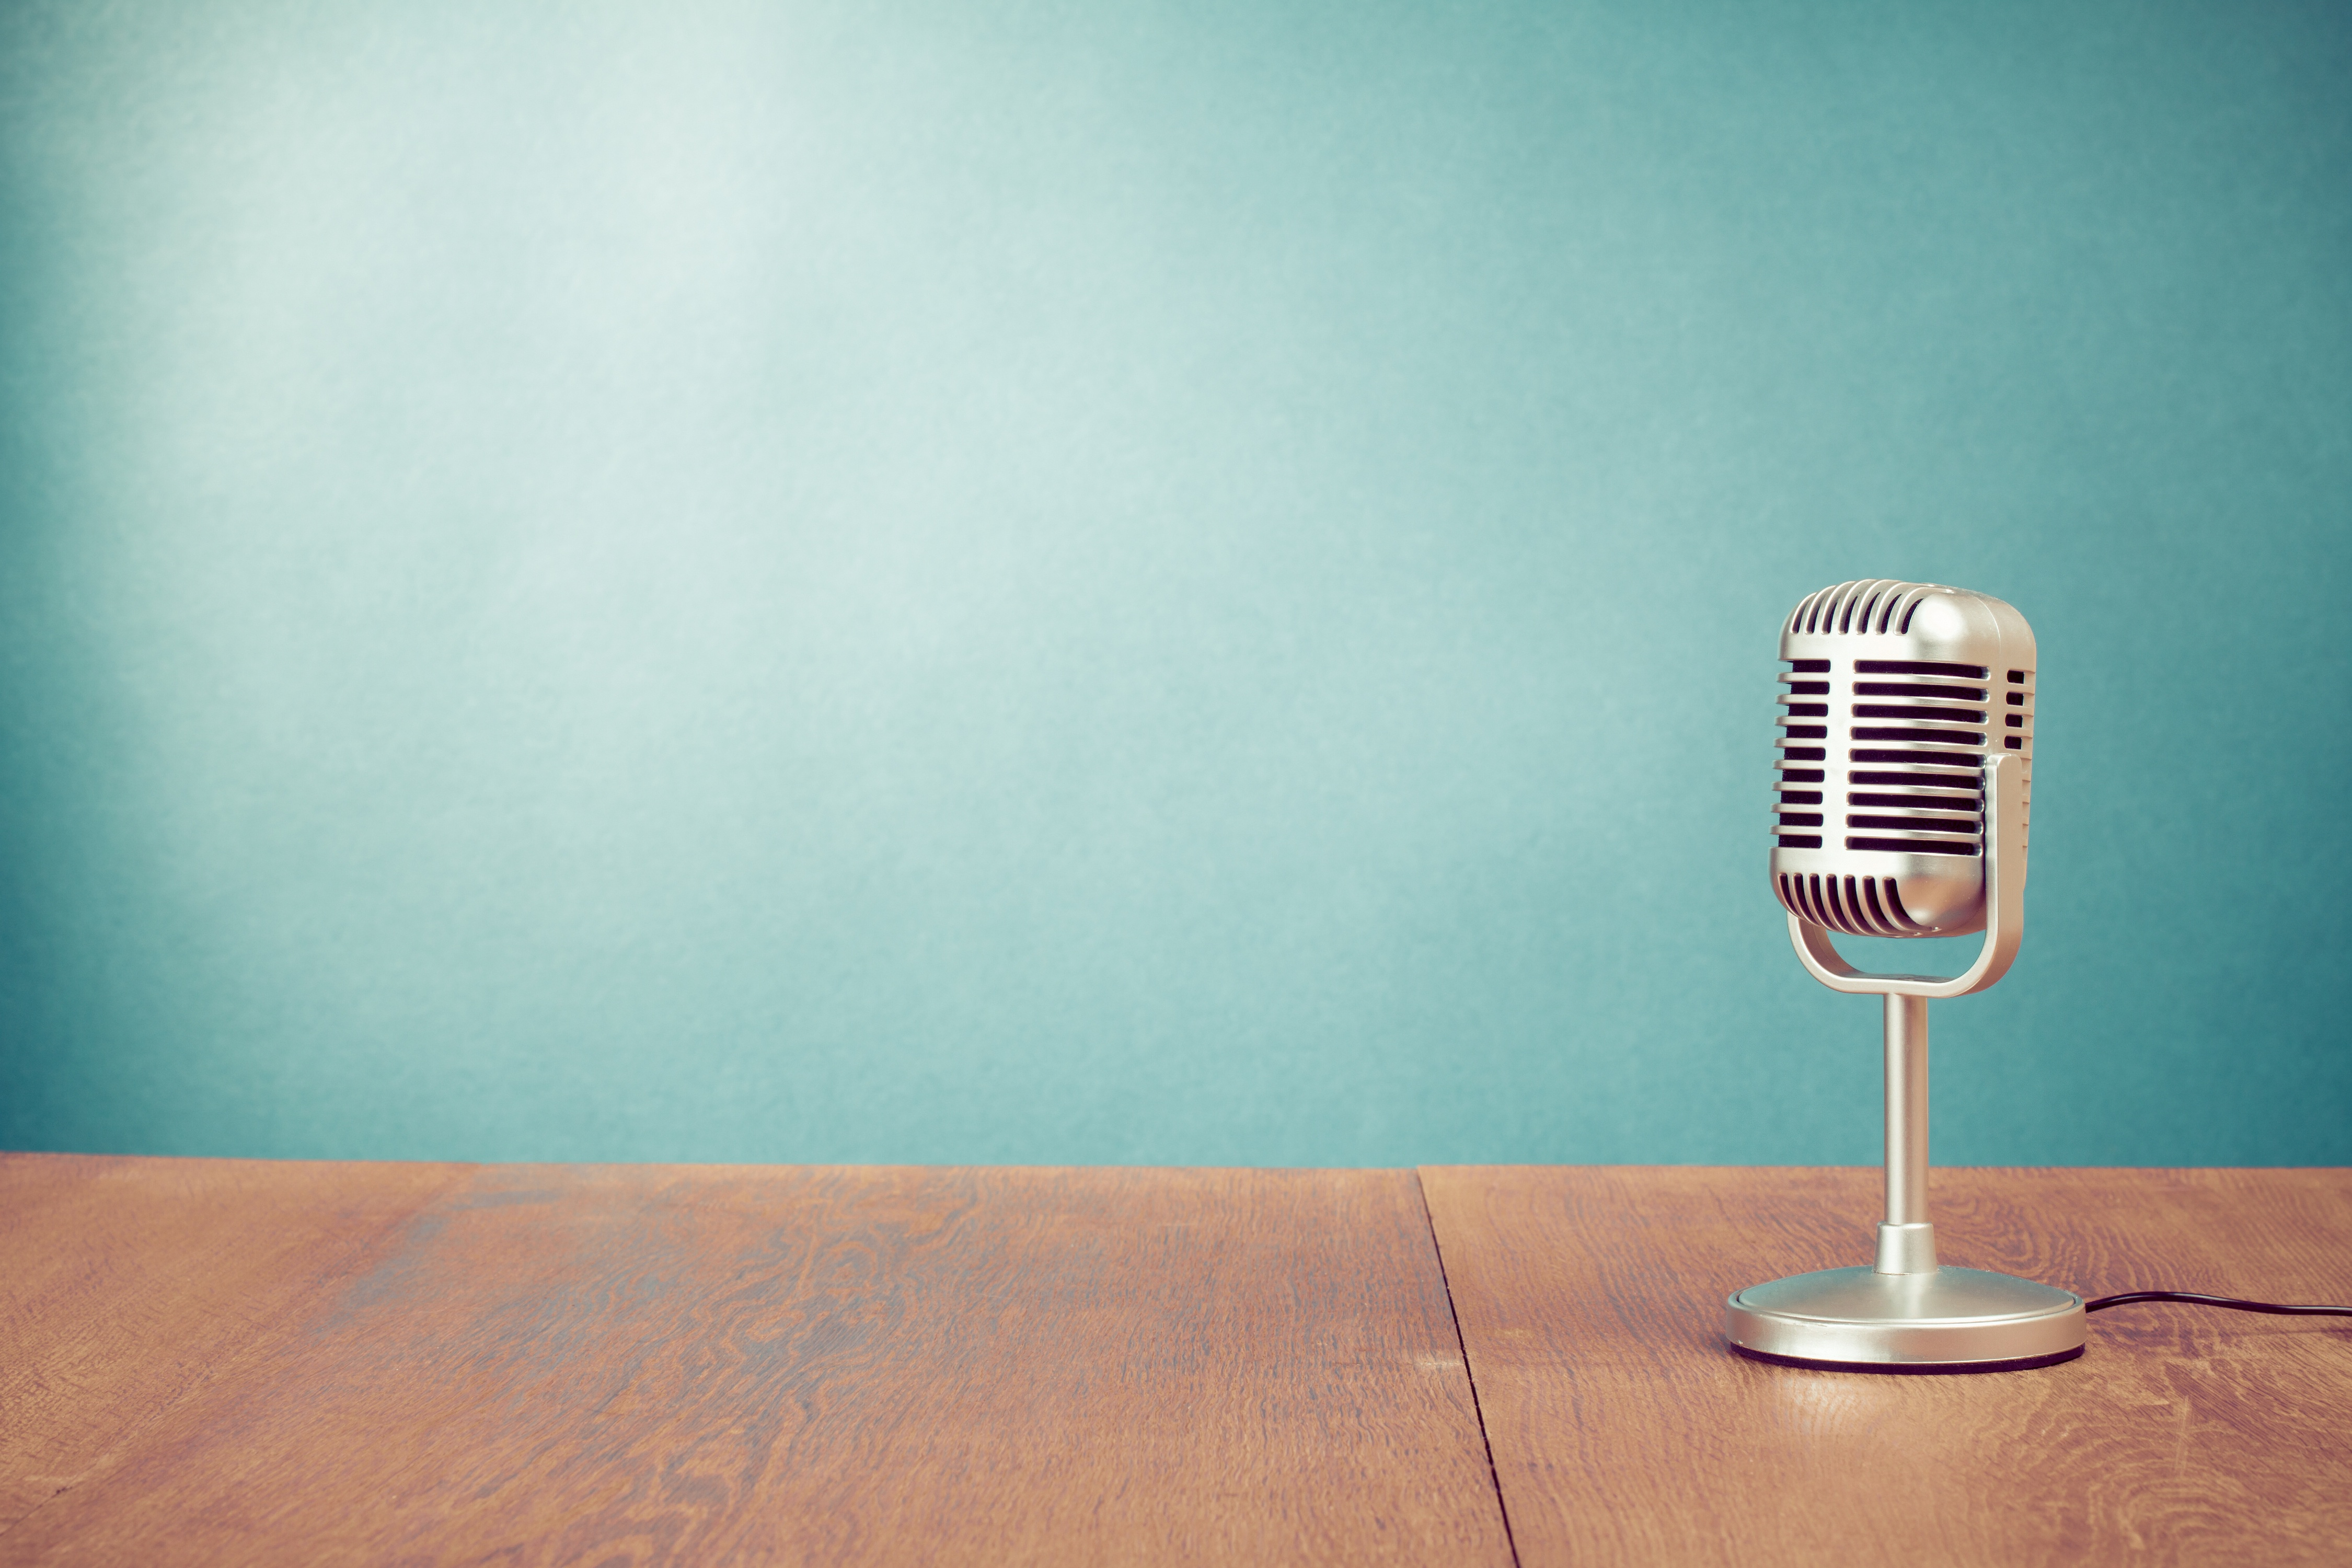 The Most Essential Elements of a Brand Voice